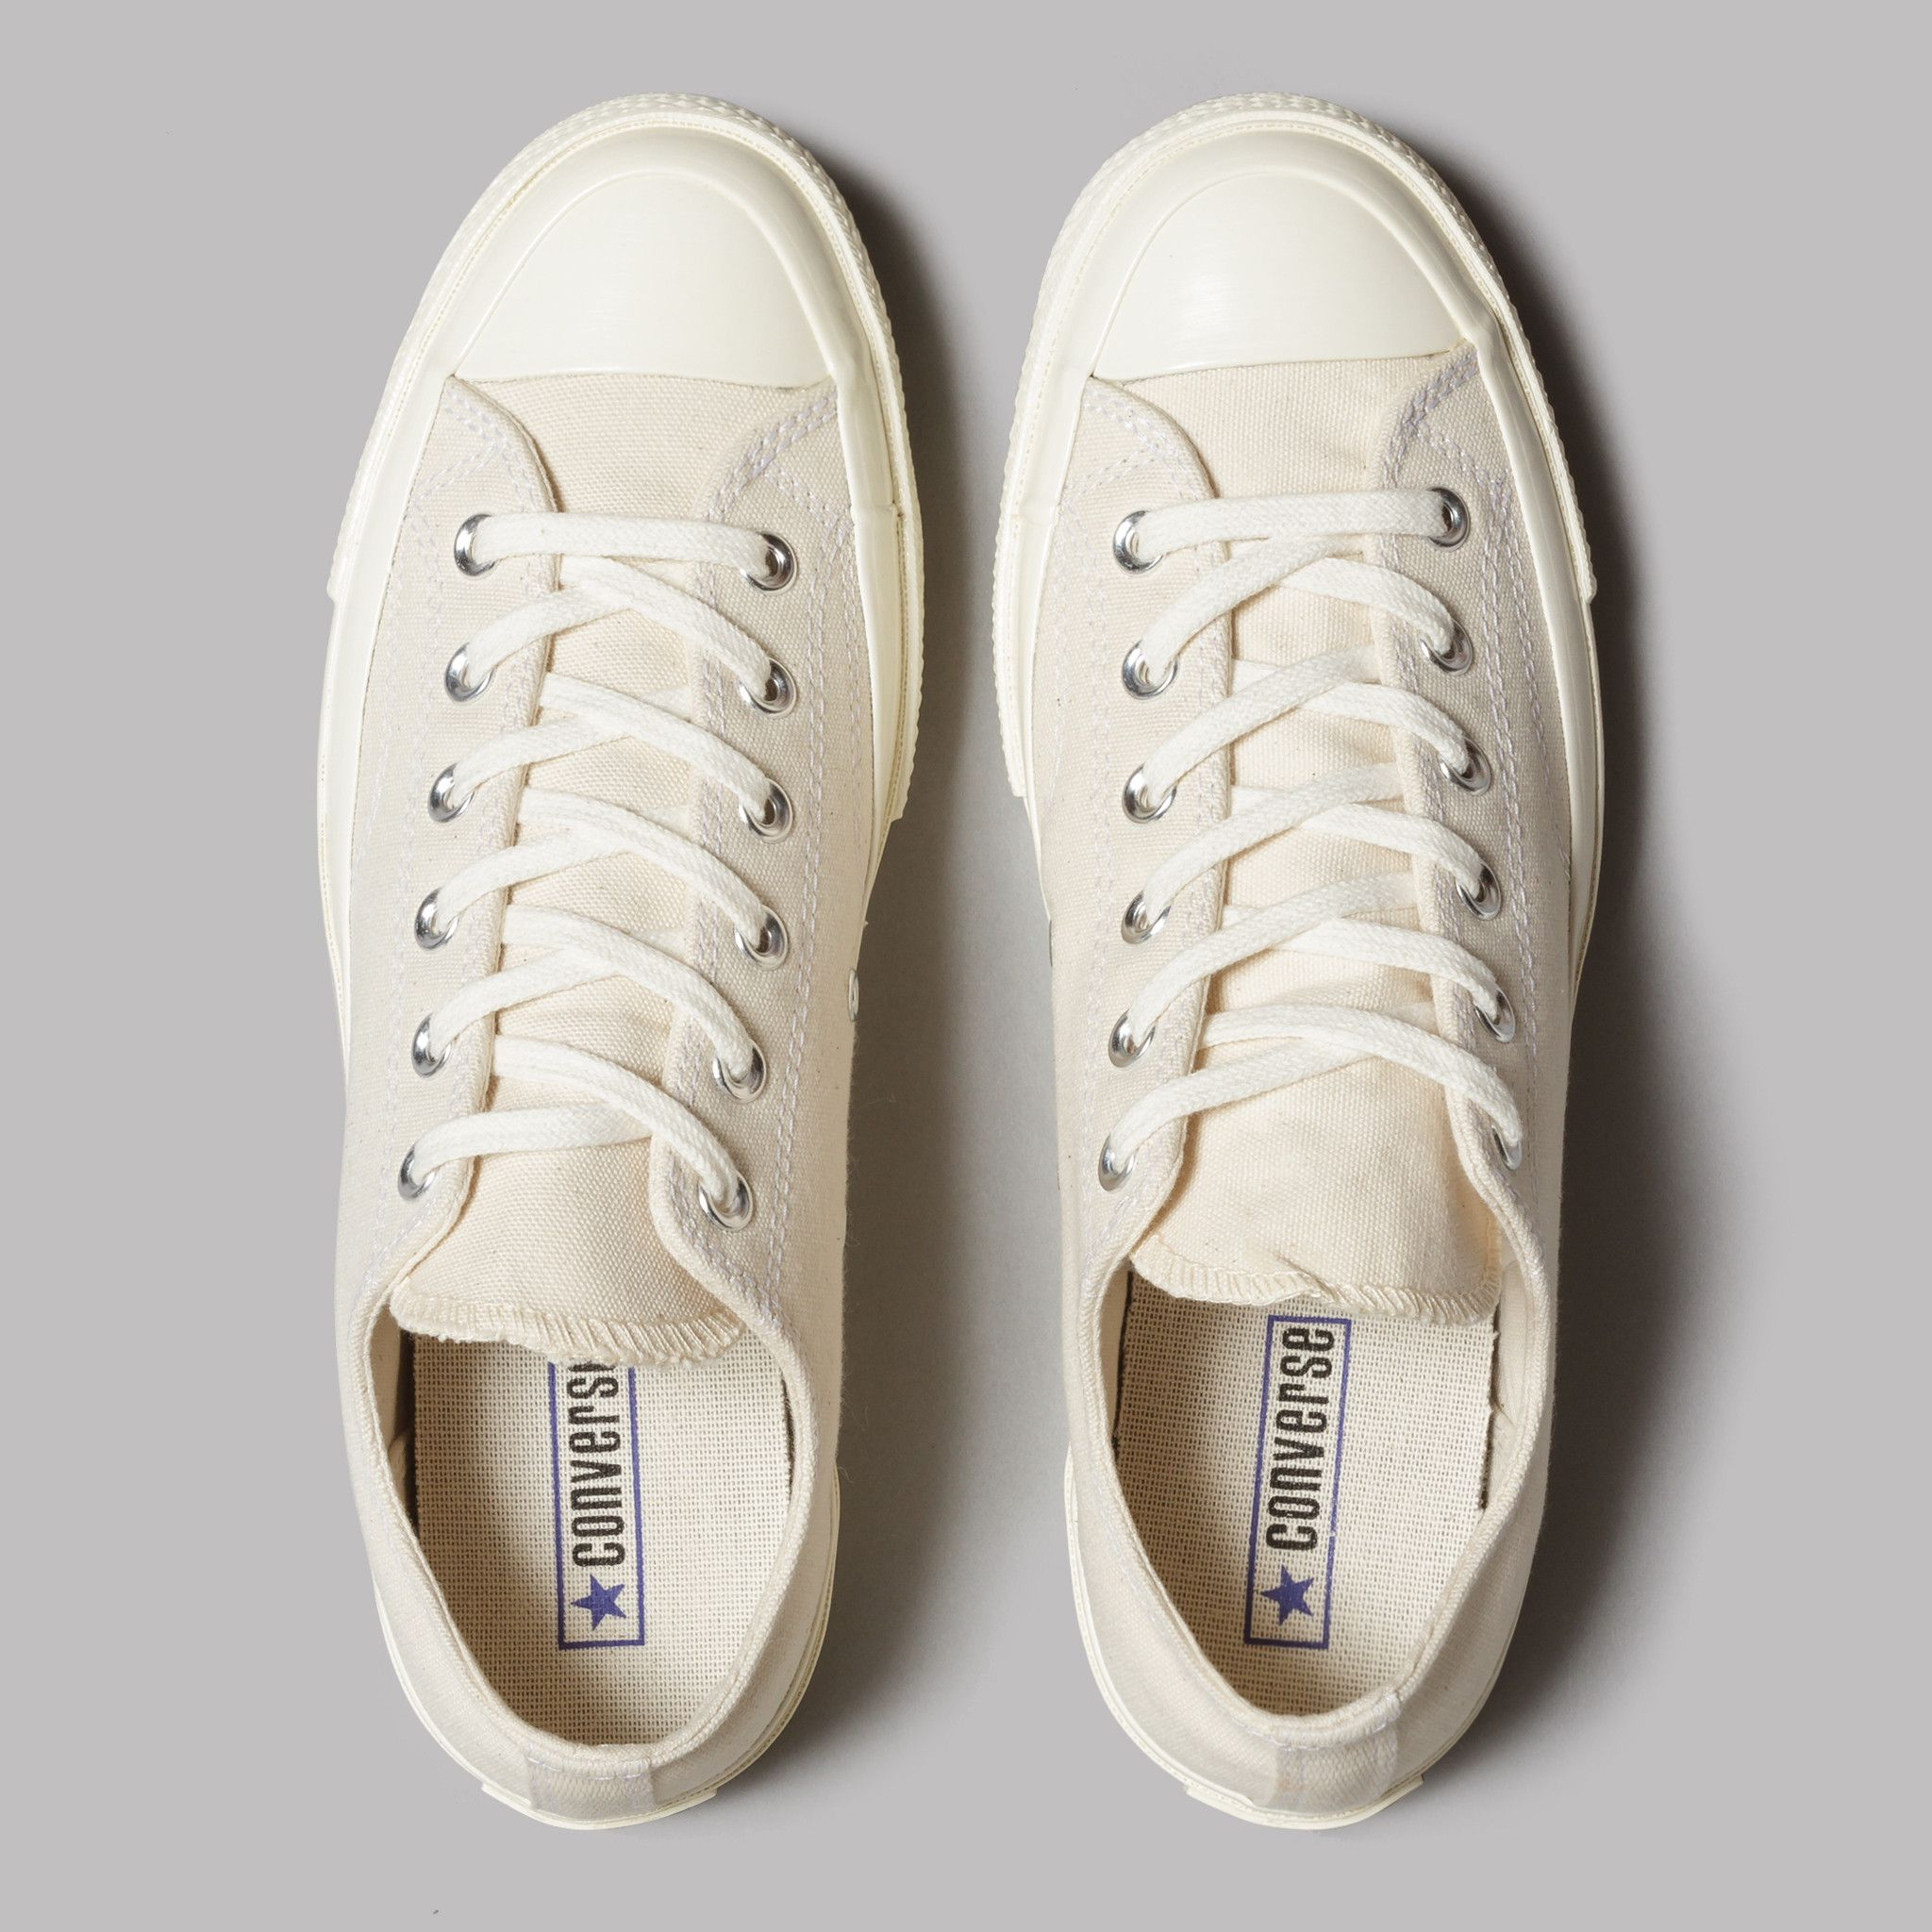 Converse 1970s Chuck Taylor All Star Ox (Natural)